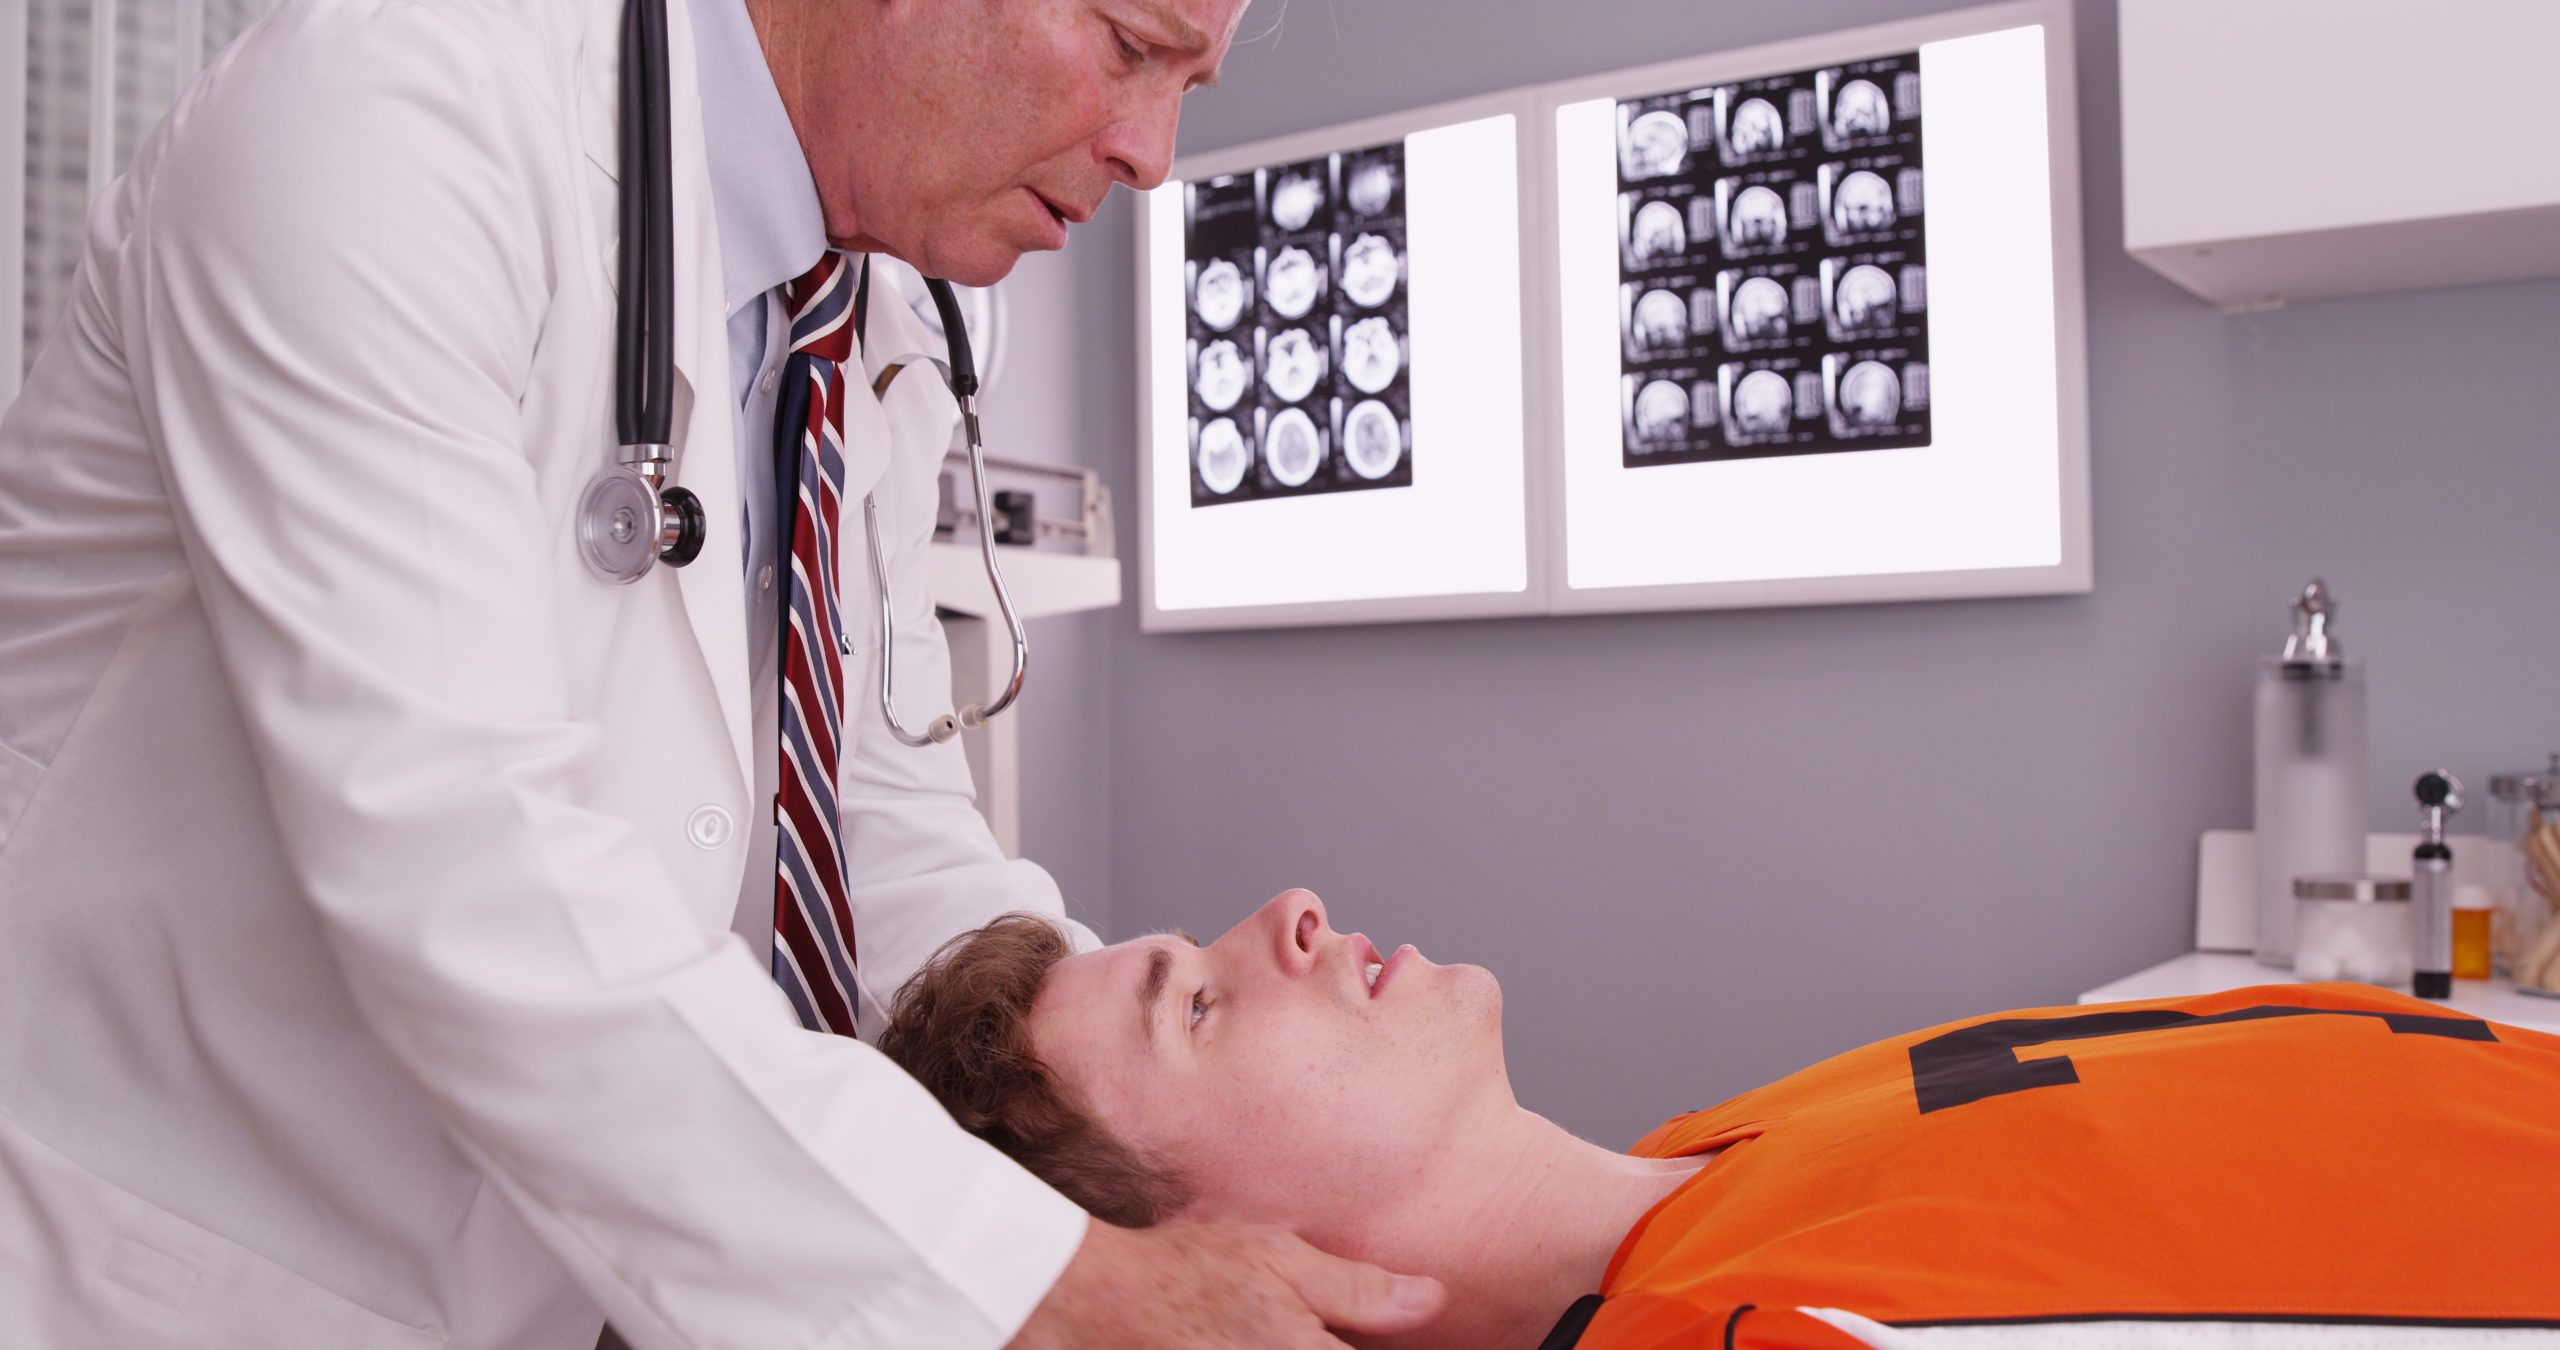 Young male in orange football jersey has his head and neck examined by an older doctor with X-ray images in the background.